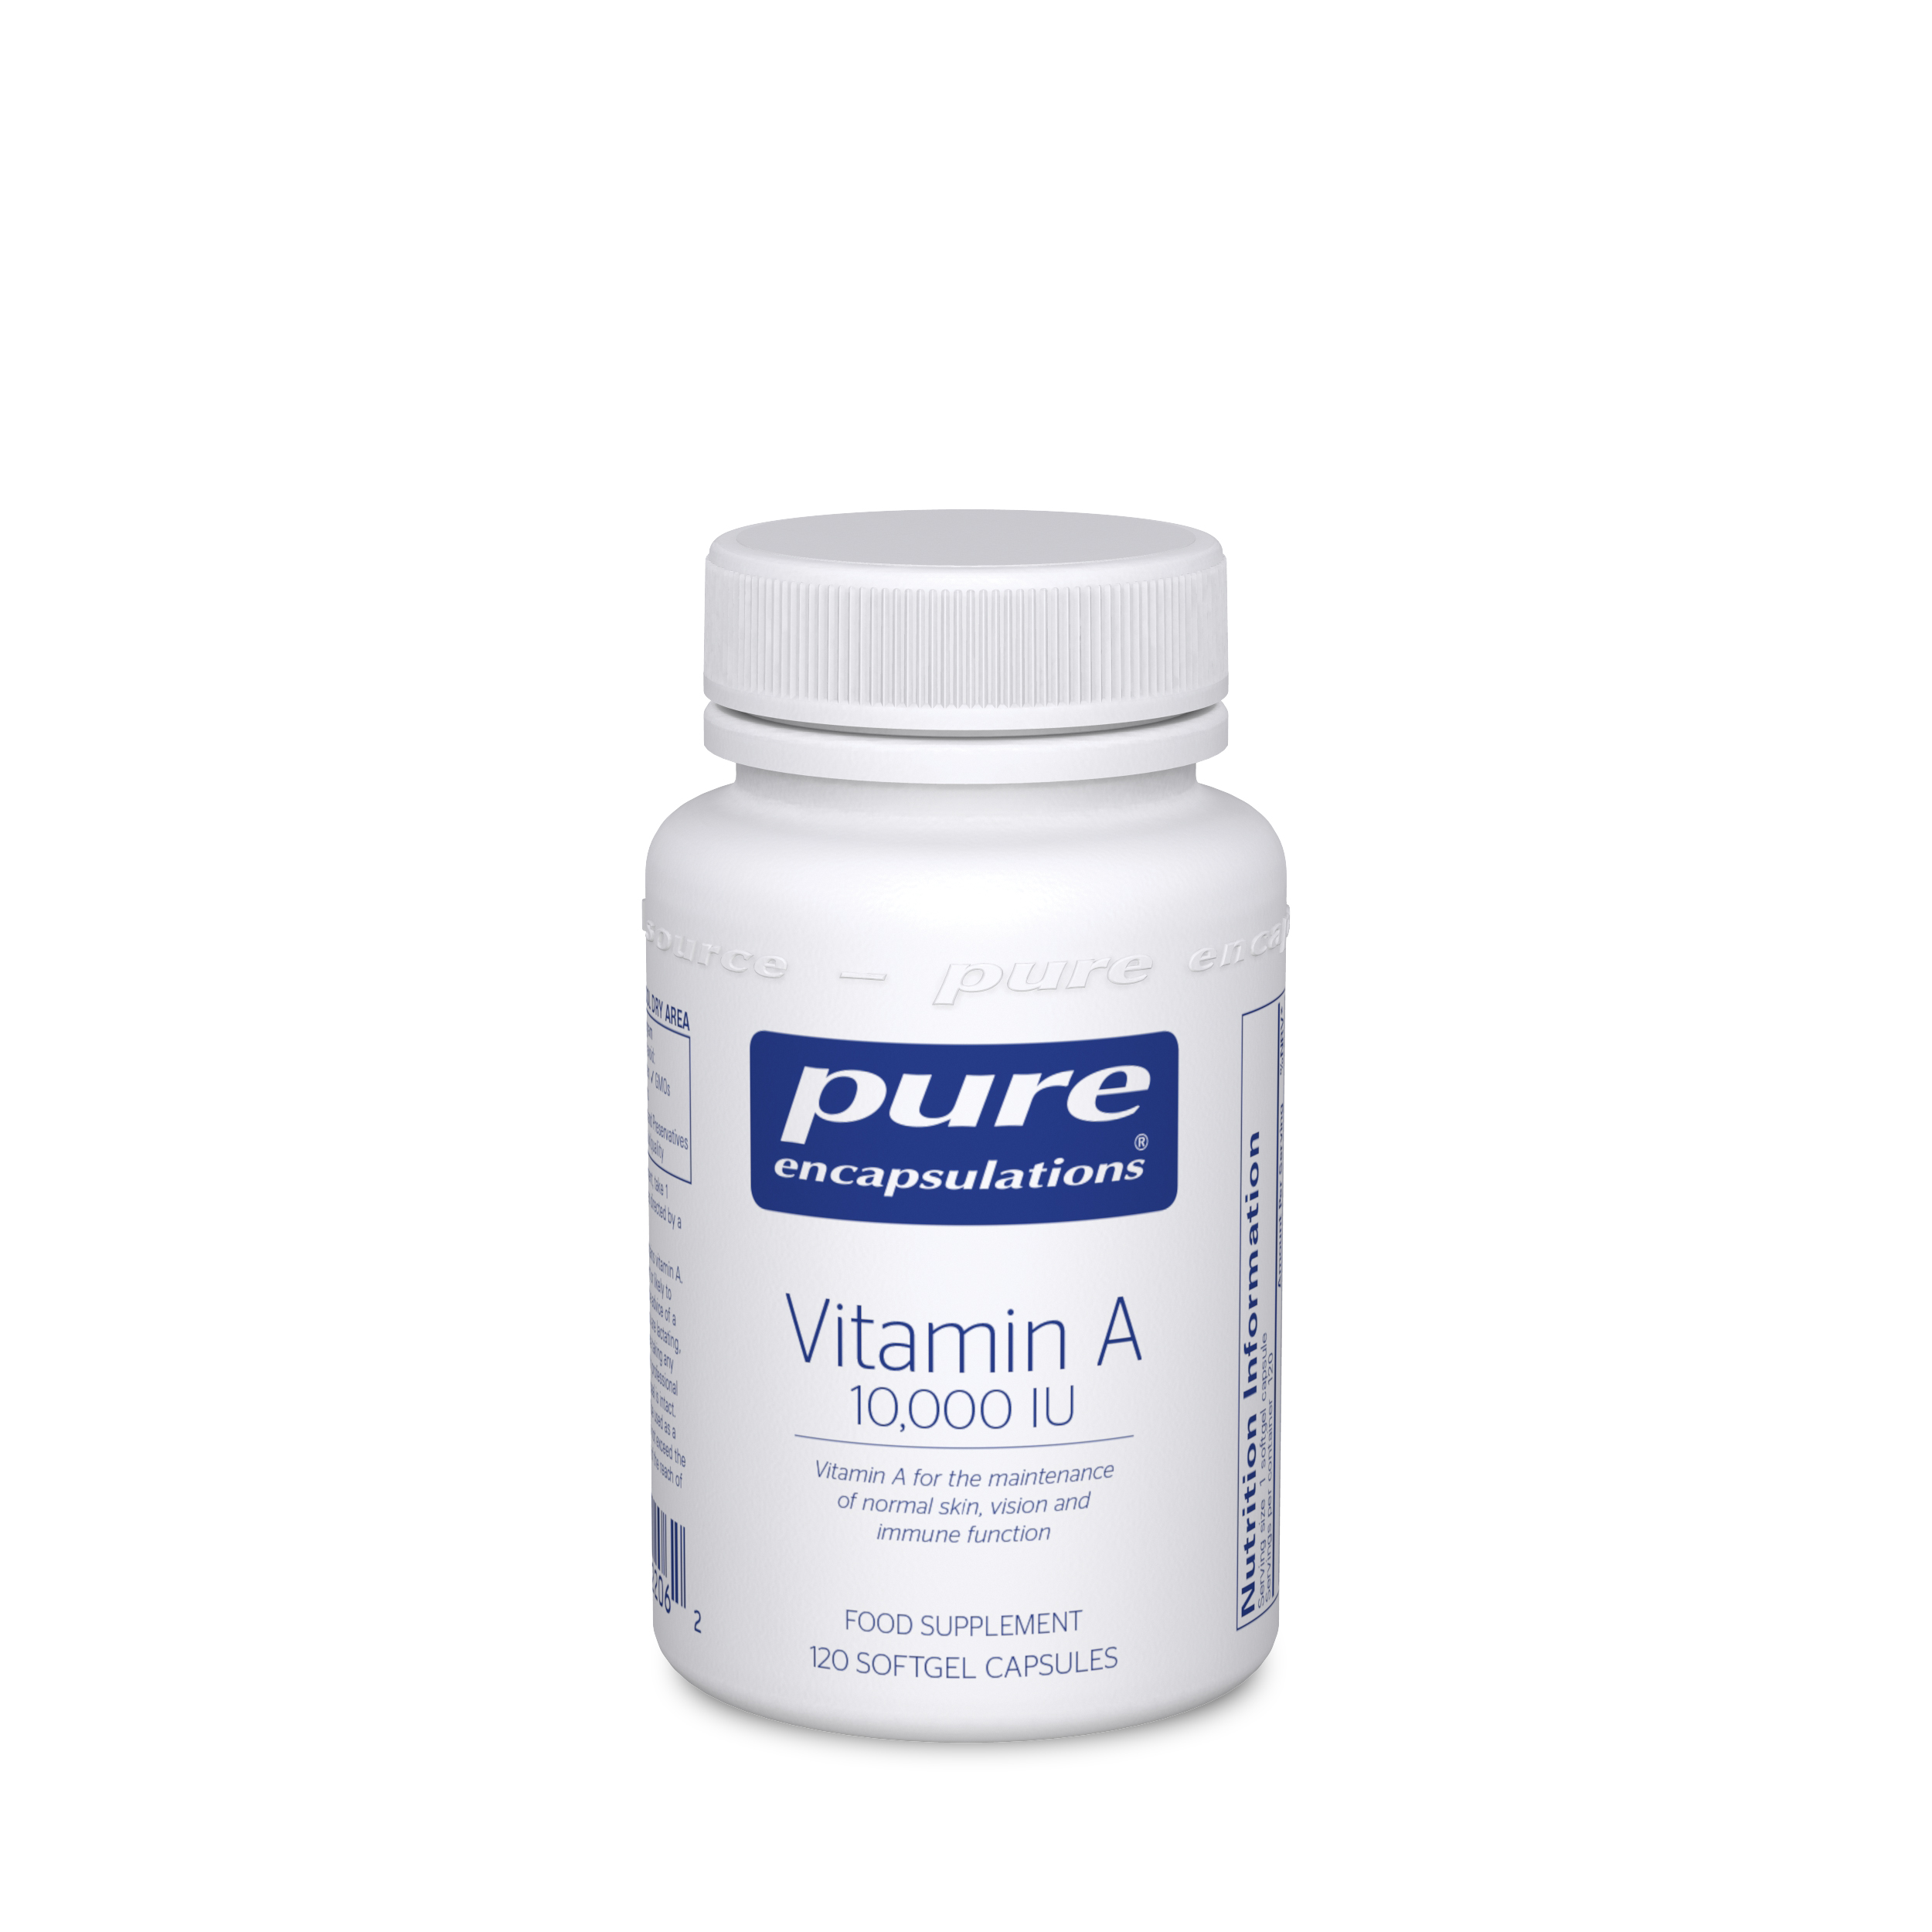 Vitamin A 10,000 IU 120's (Currently Unavailable)